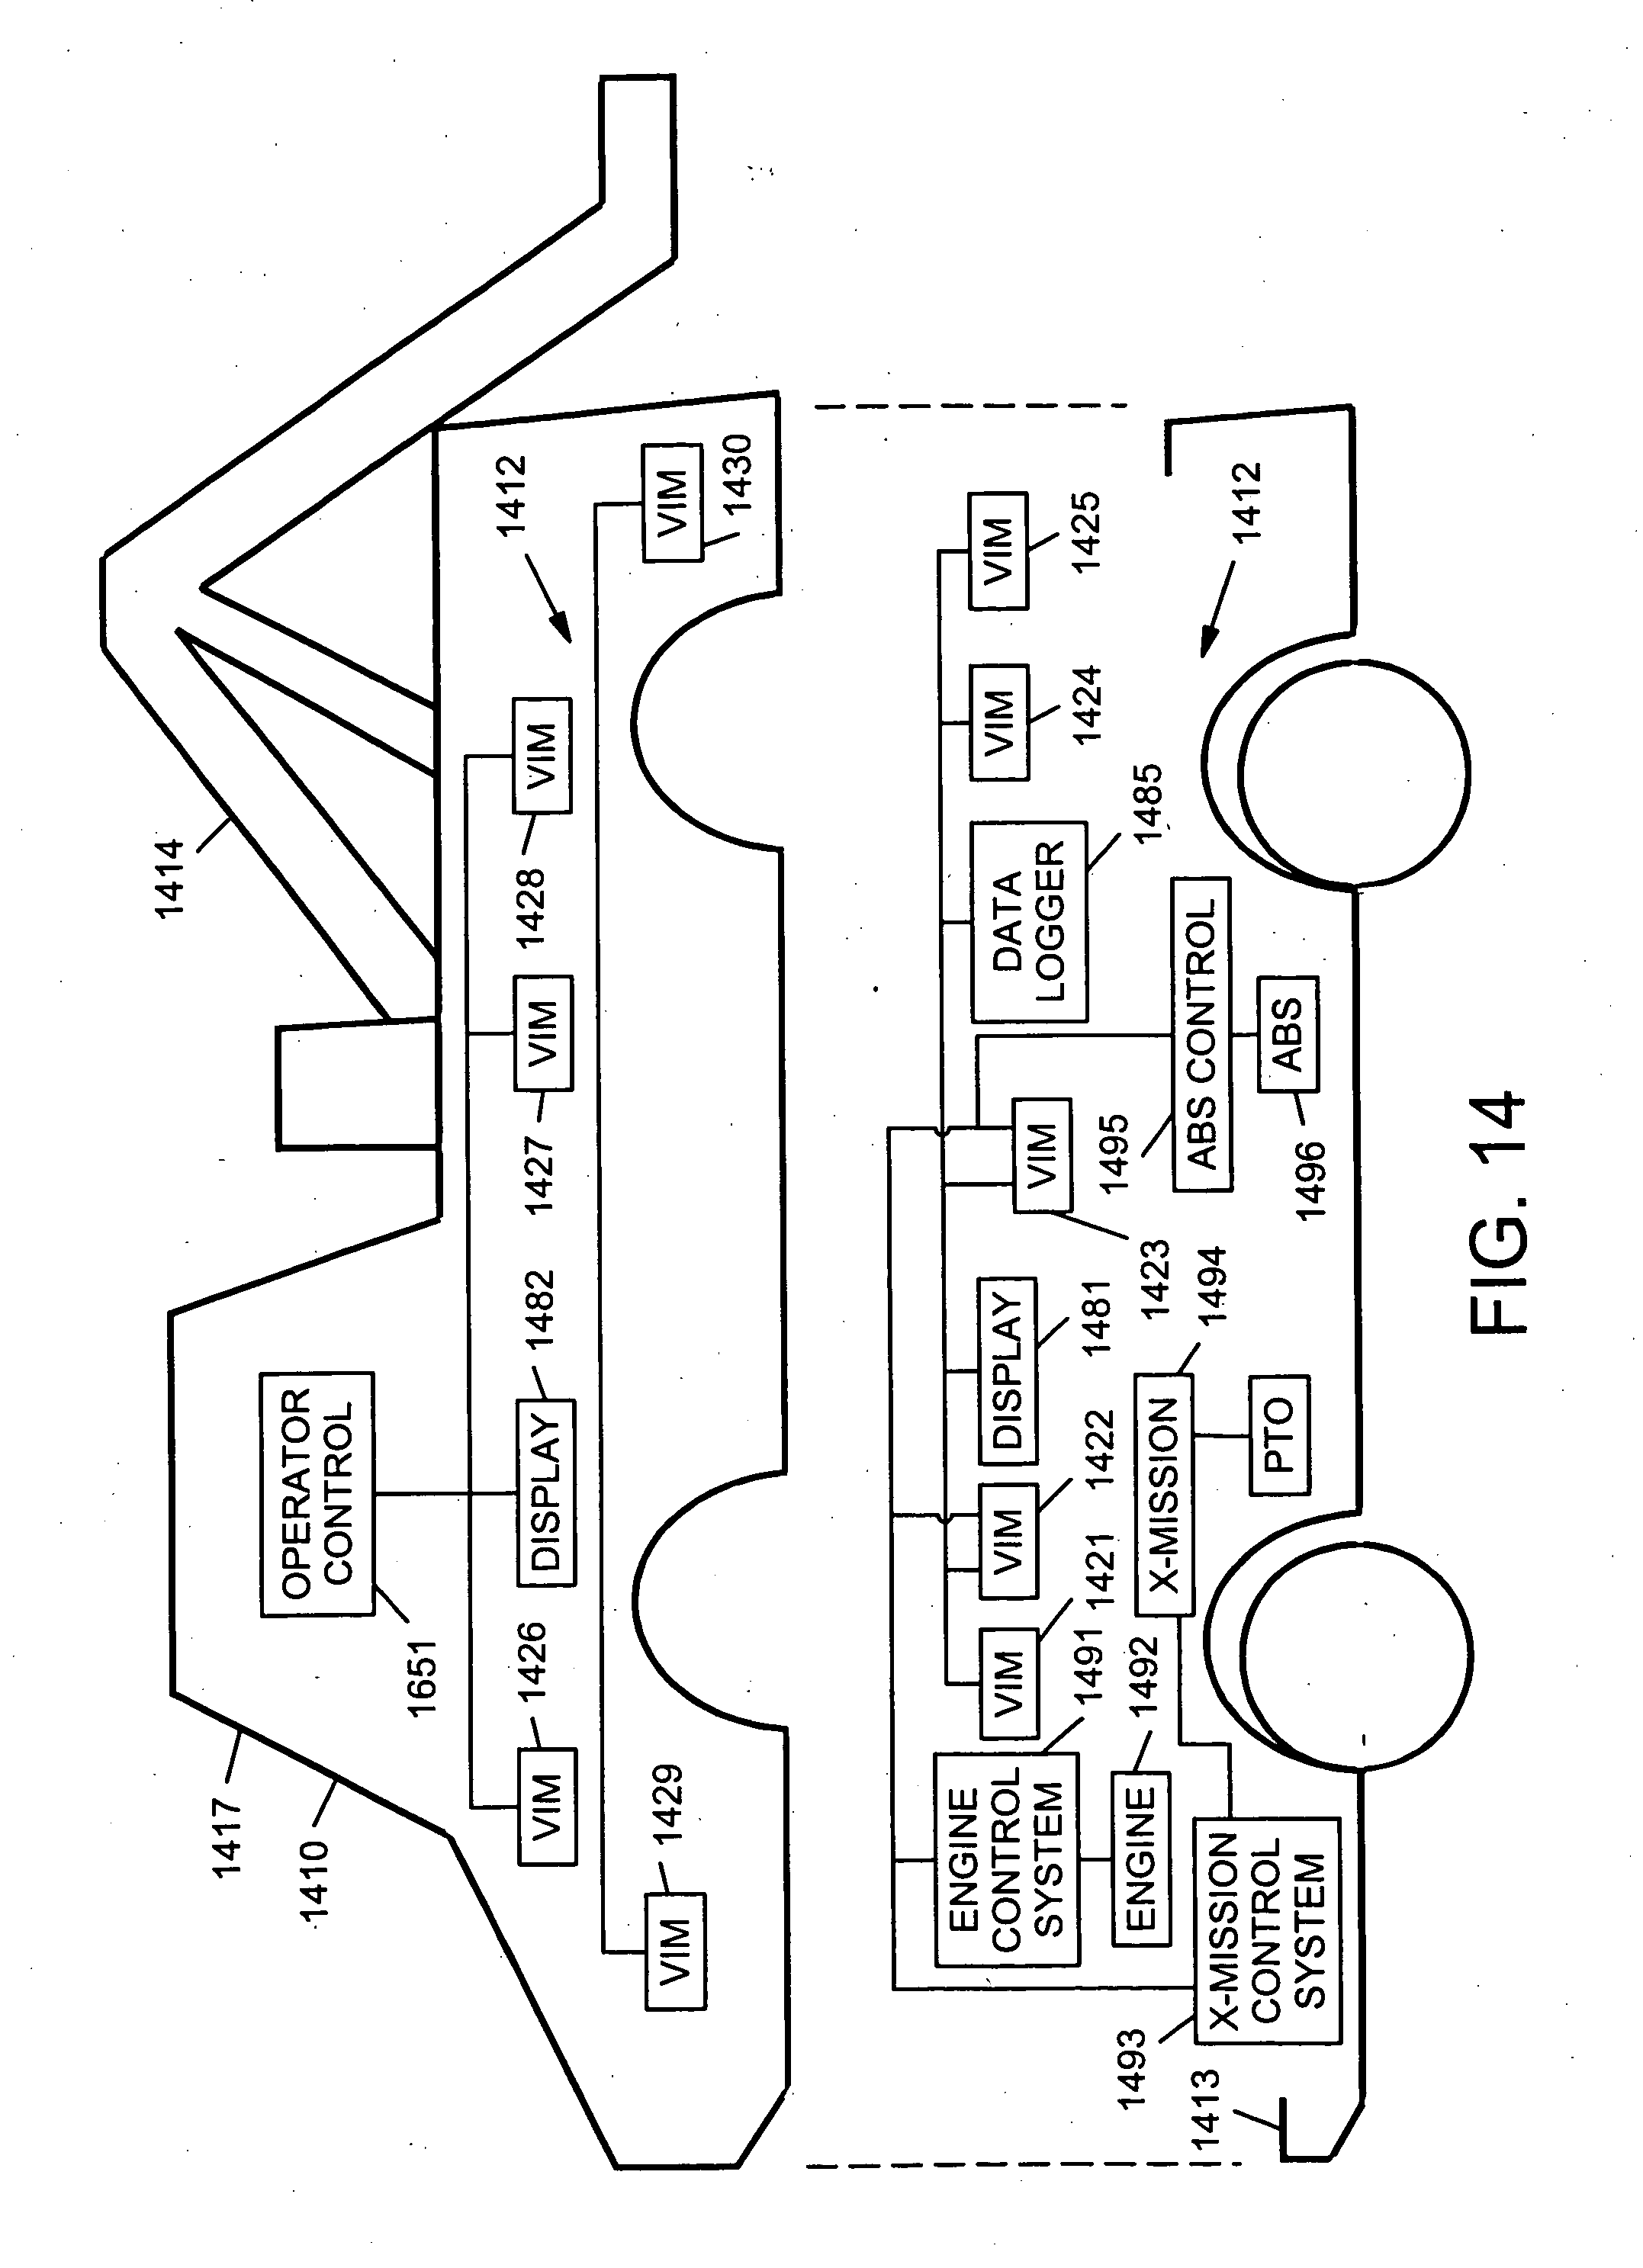 Us20050113988a1 20050526 d00015 3 phase wiring diagram motor wiring wiring harness diagram images on wiring